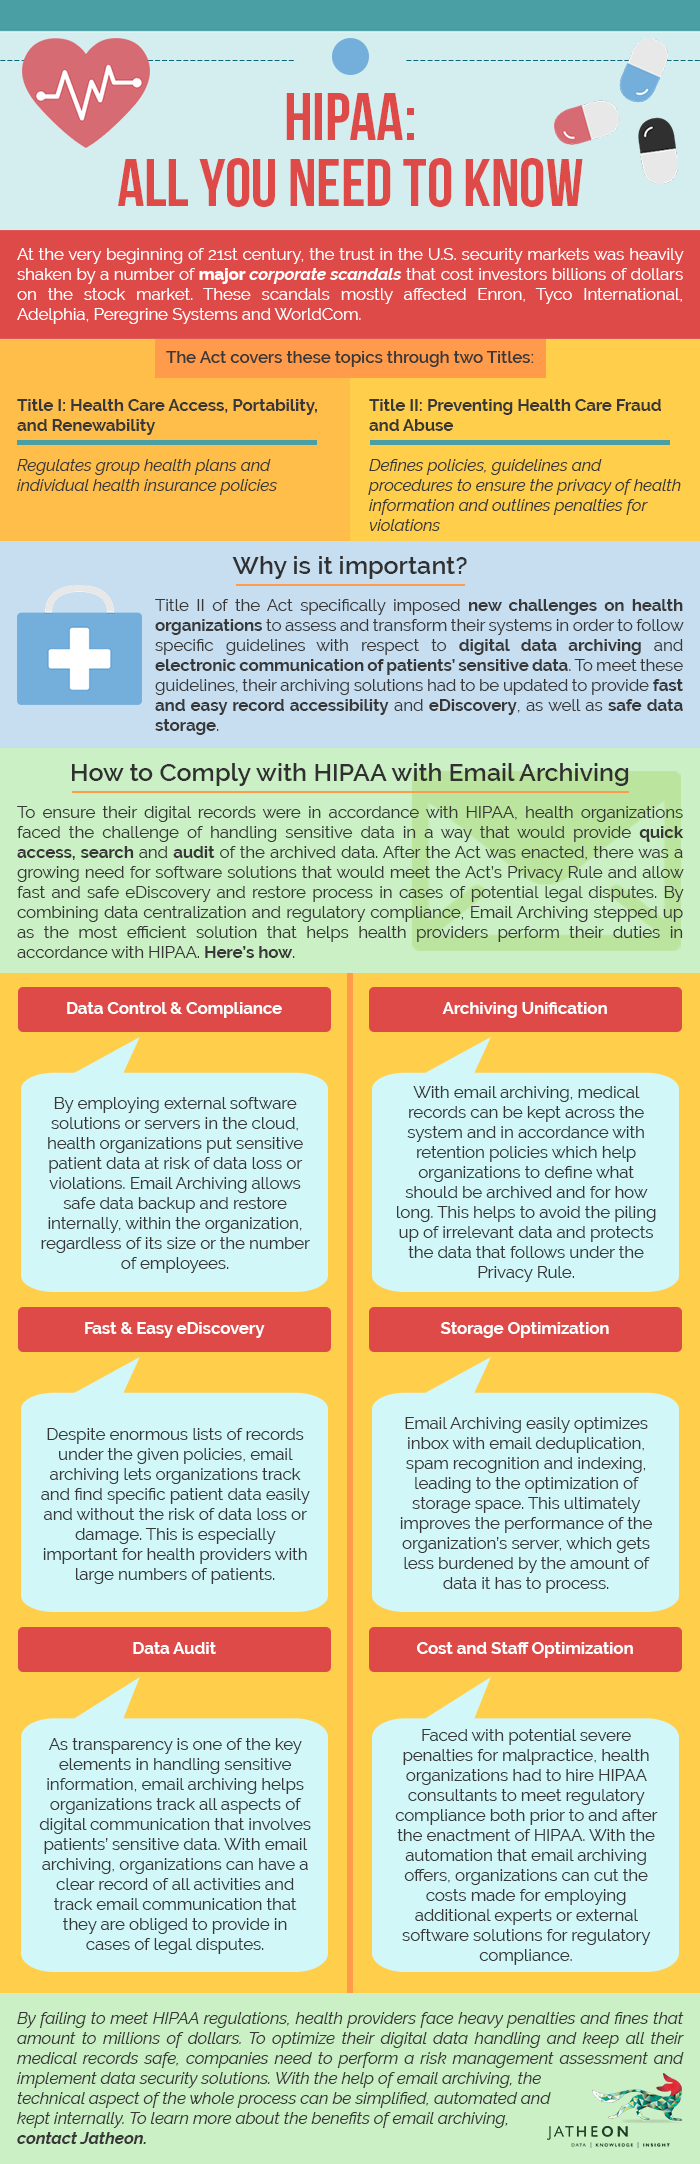 HIPAA - All You Need to Know Infographic